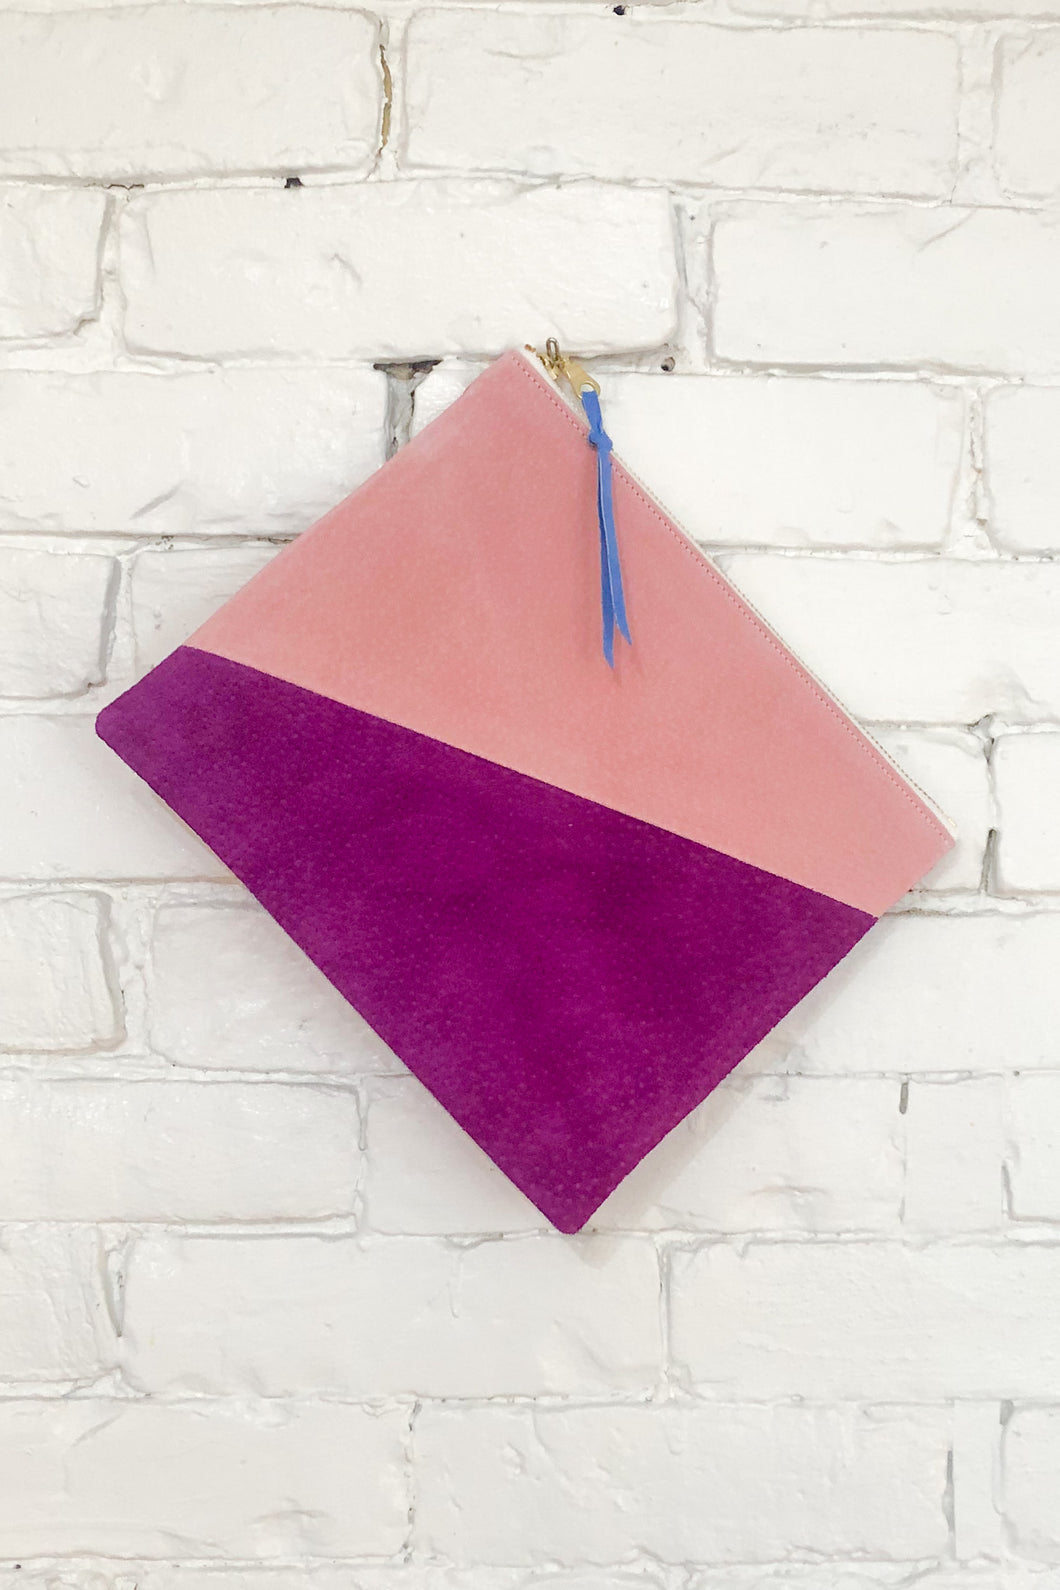 The Diagonal (Plum, Violet, and Blush)